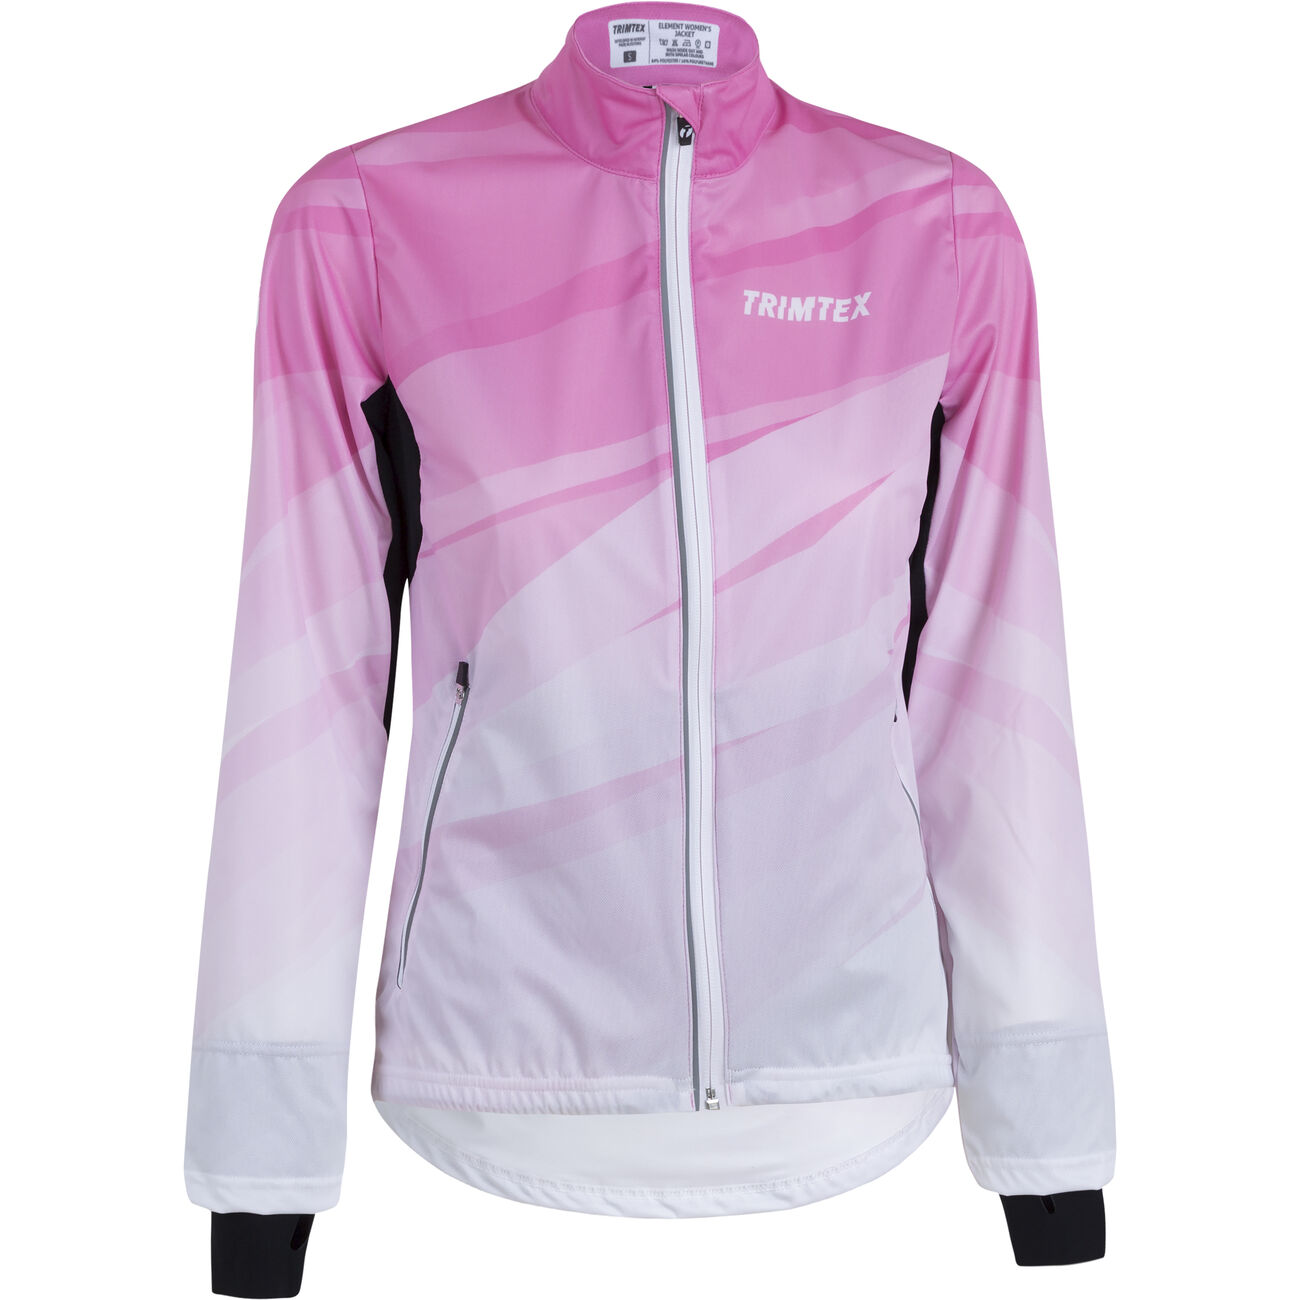 Element women's training jacket